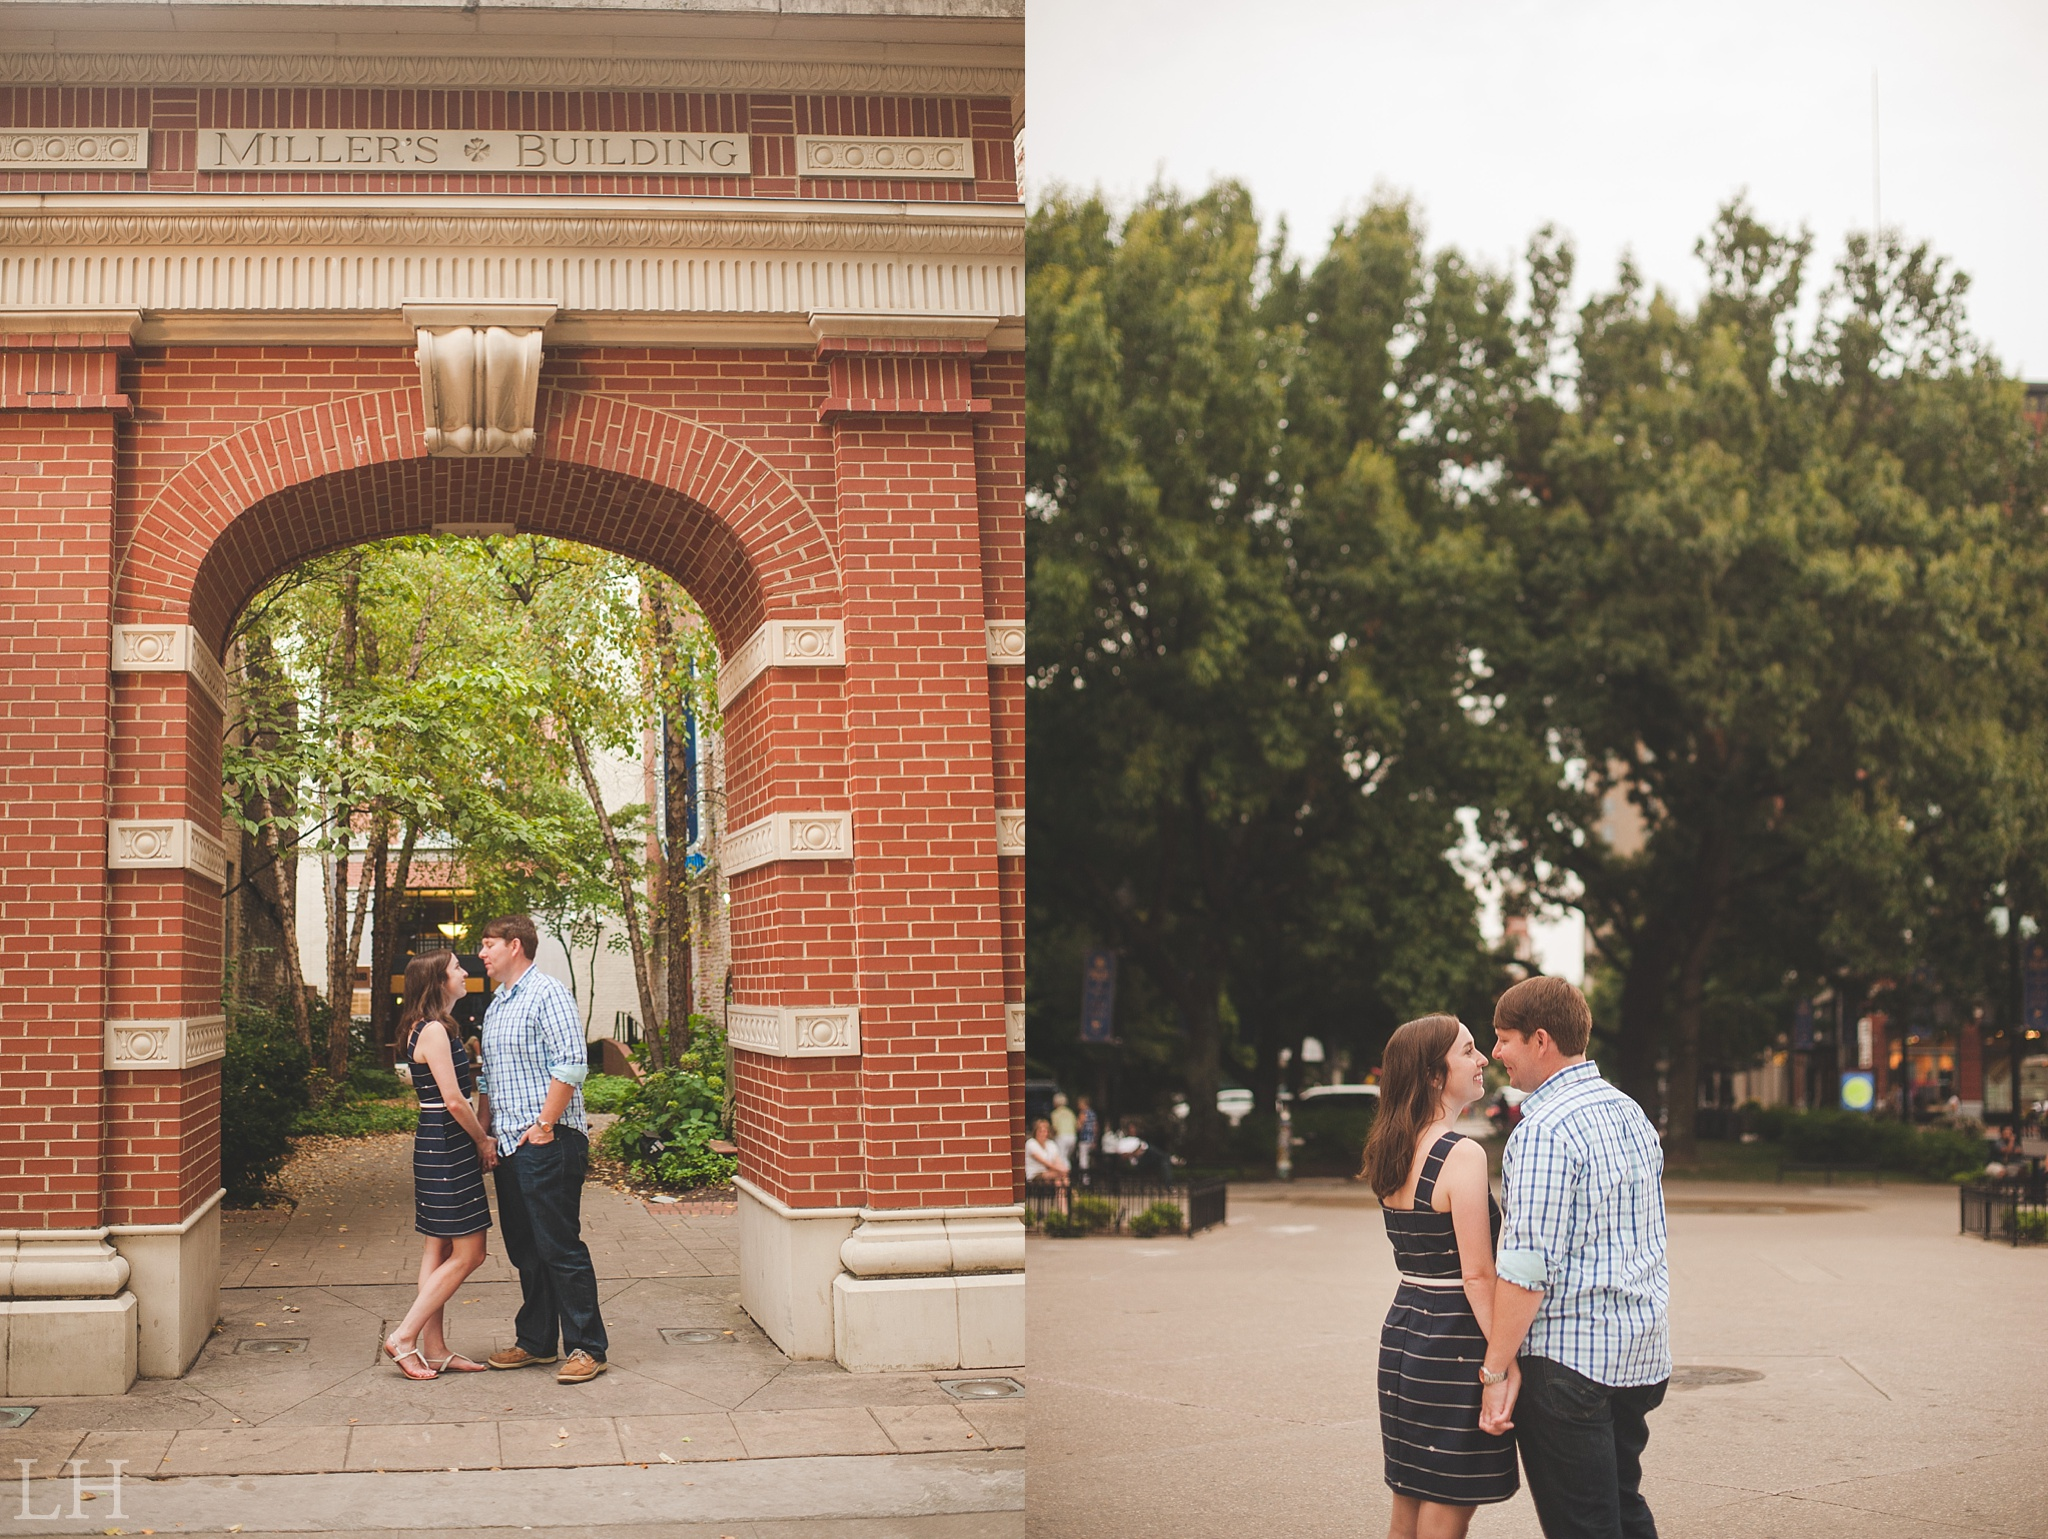 DowntownKnoxvilleEngagementSession125.jpg